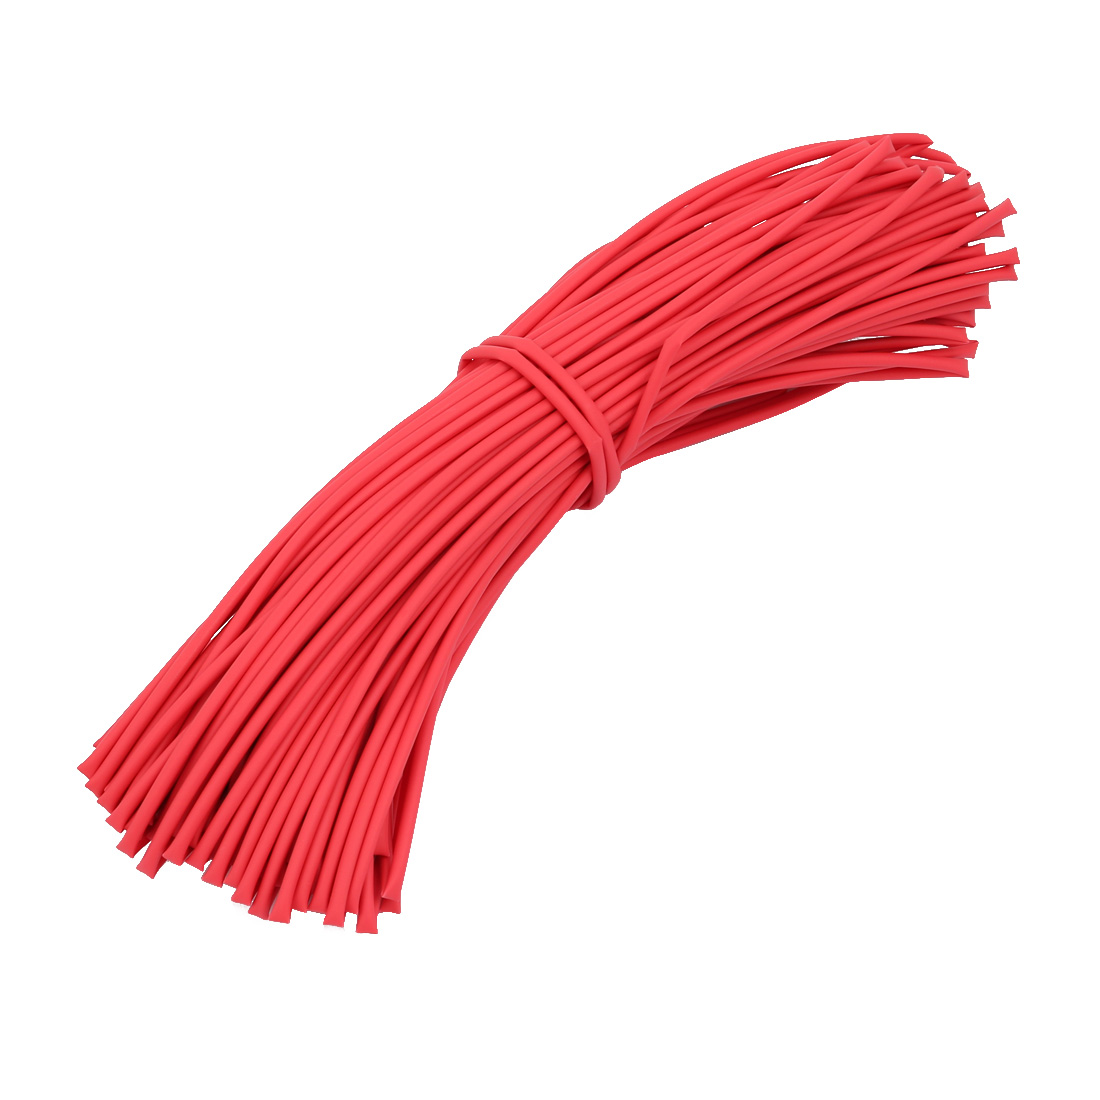 Polyolefin Heat Shrinkable Tube Wire Cable Sleeve 25 Meters Length 1.5mm Inner Dia Red